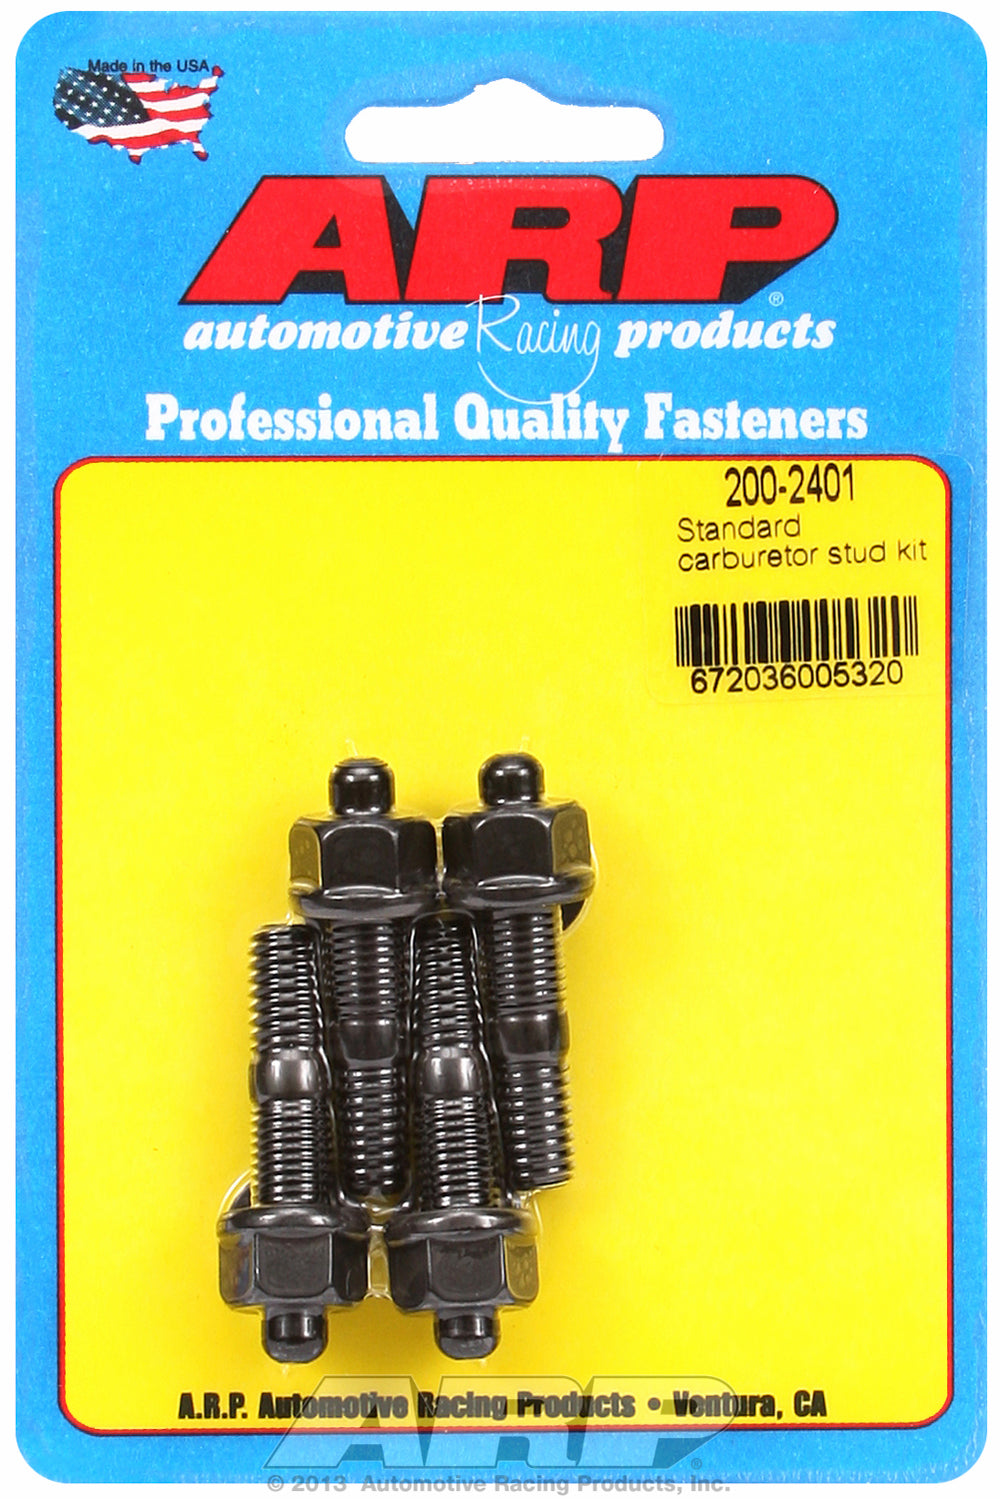 Standard Carb Stud Kit 1.7in OAL